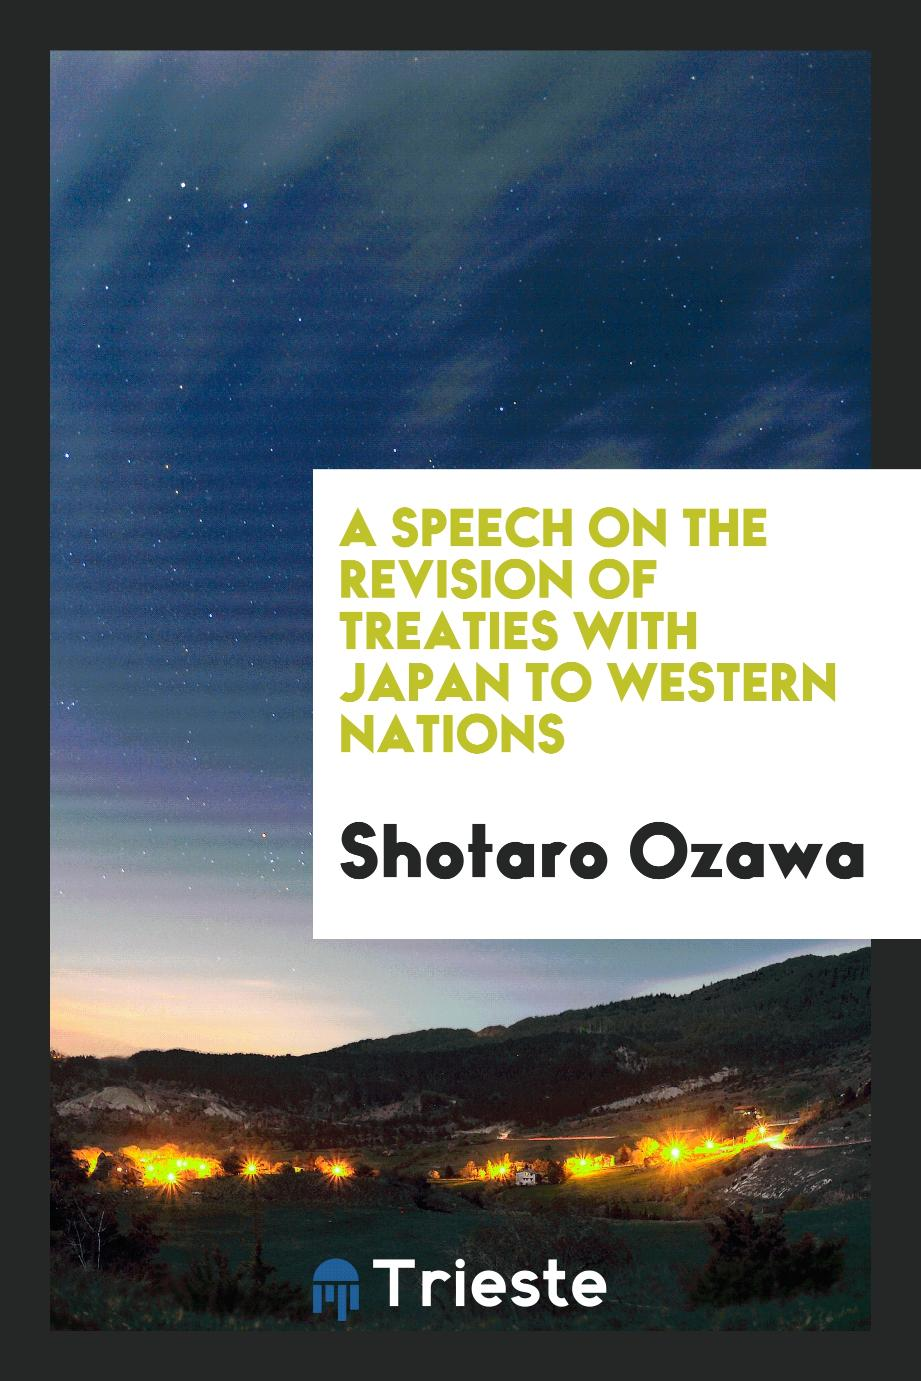 A Speech on the Revision of Treaties with Japan to Western Nations